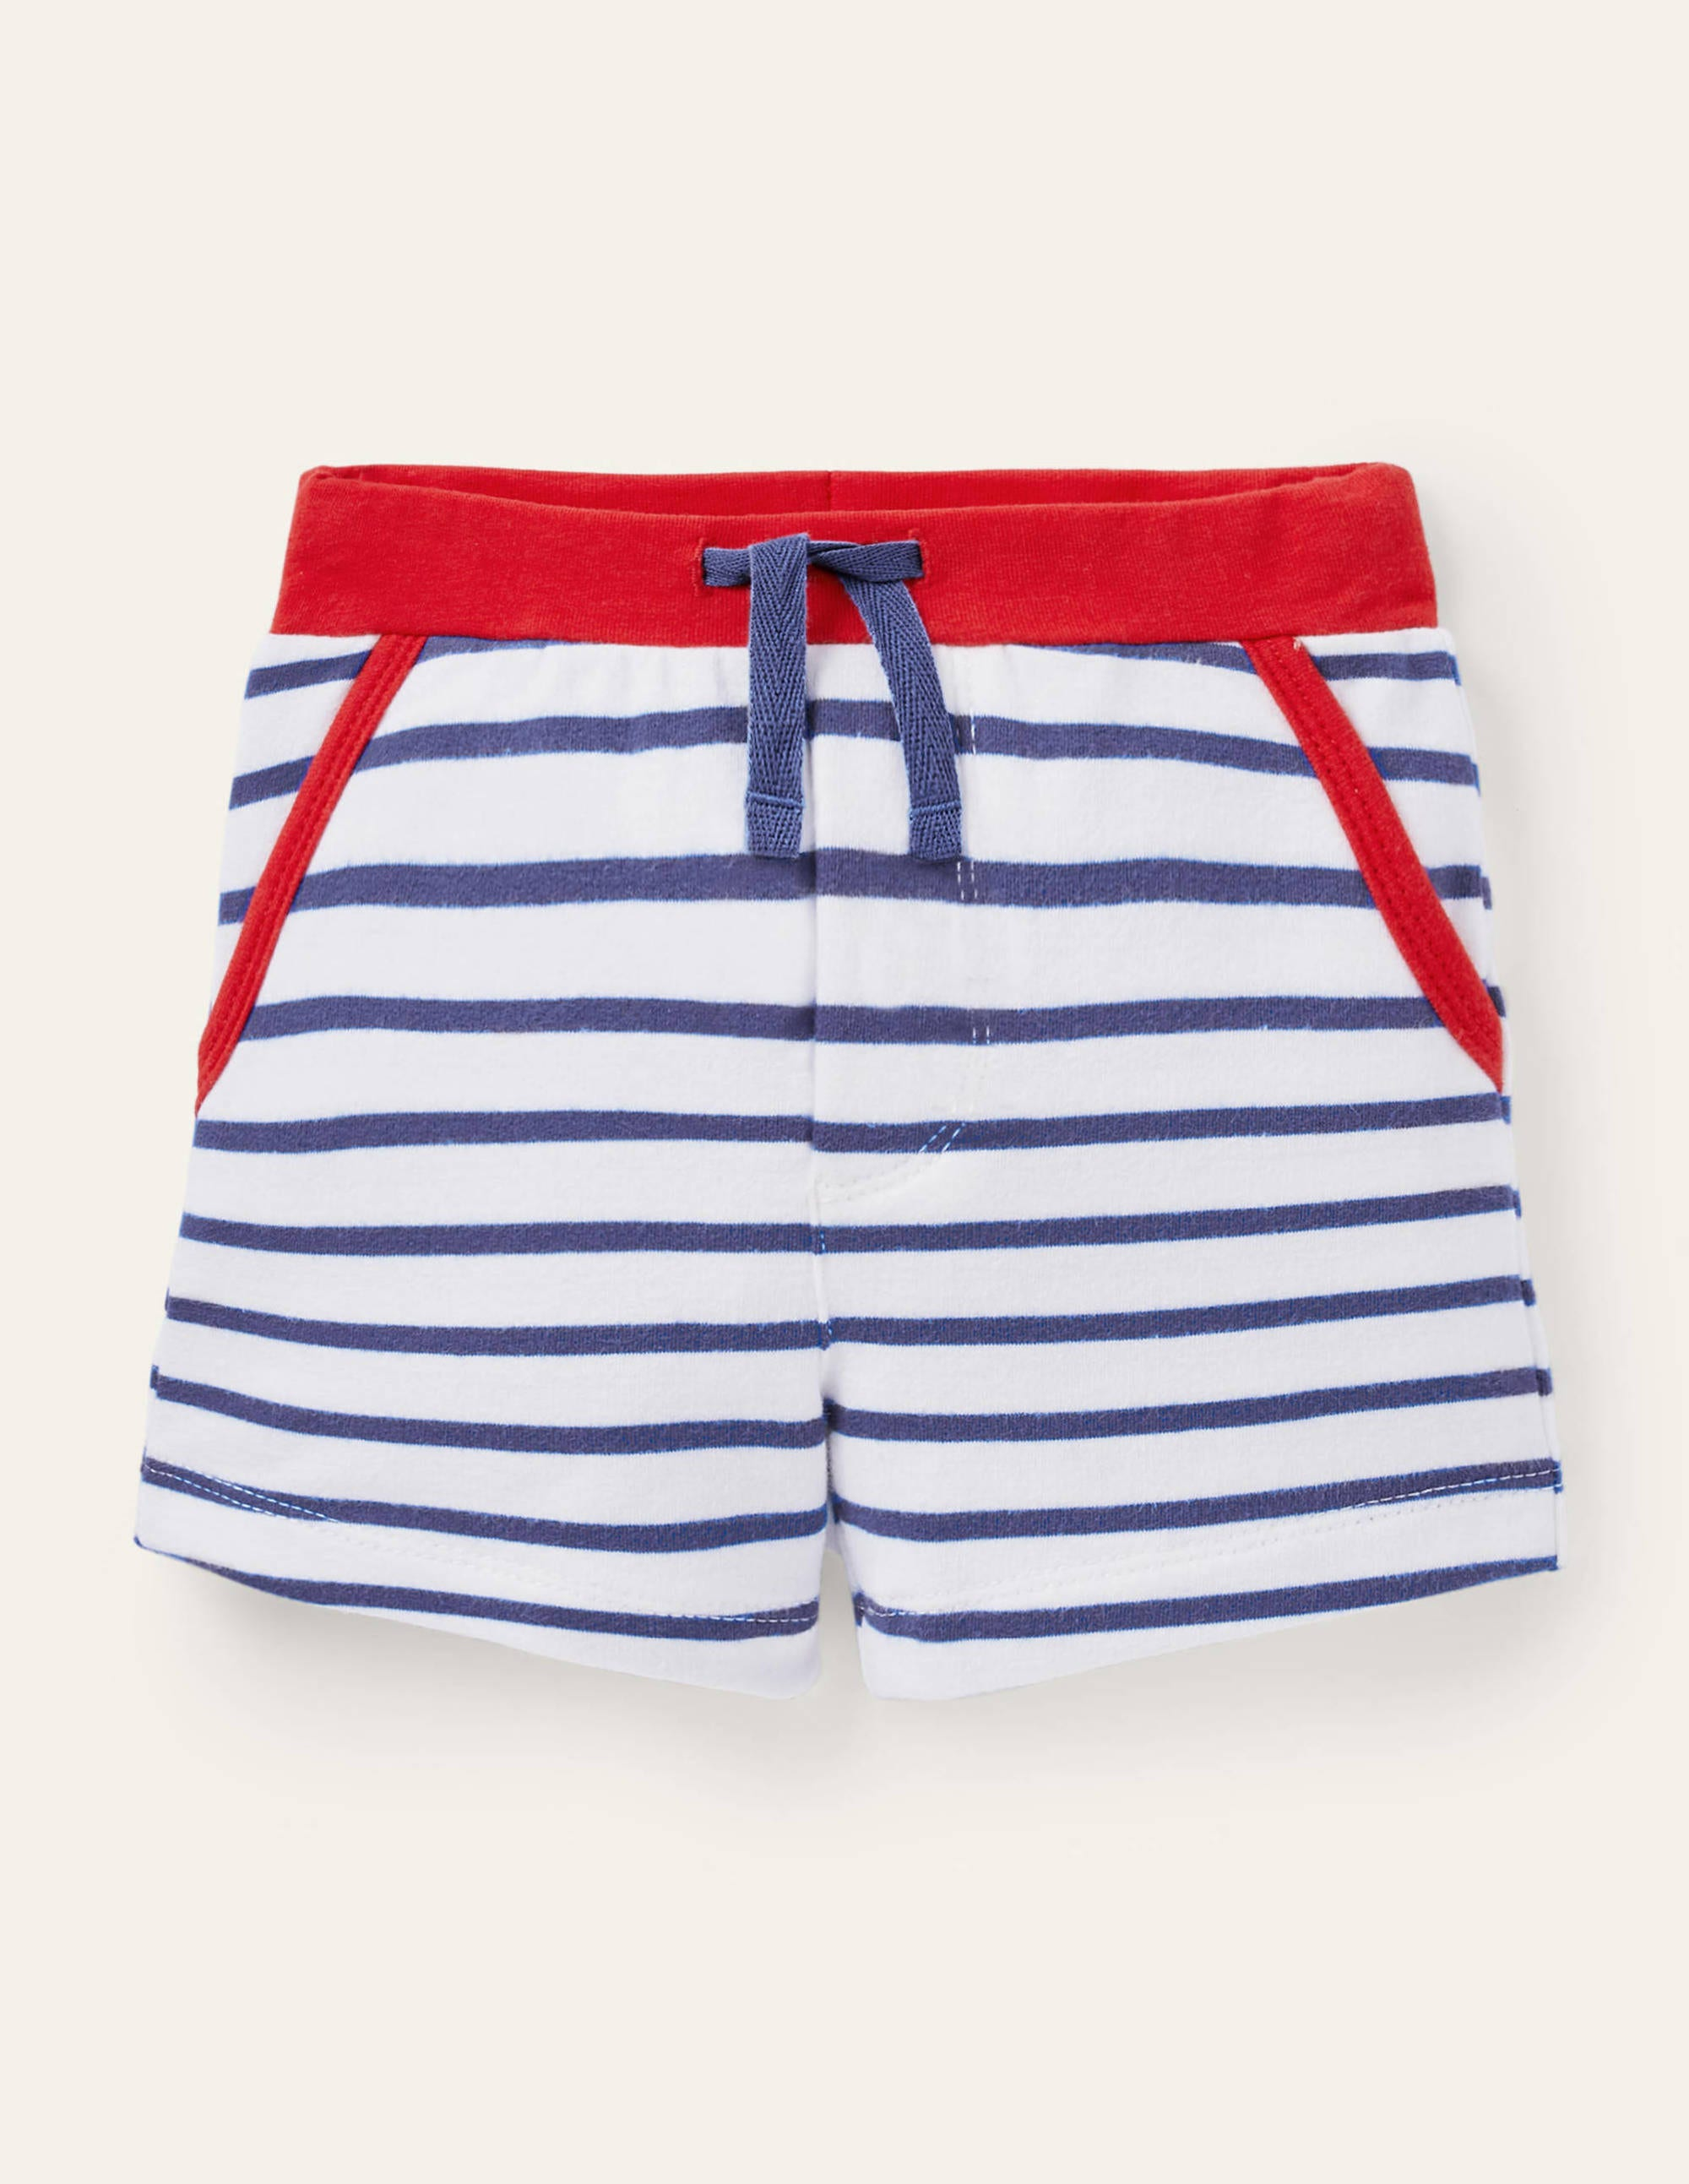 Boden Essential Jersey Shorts - Ivory/Starboard Blue